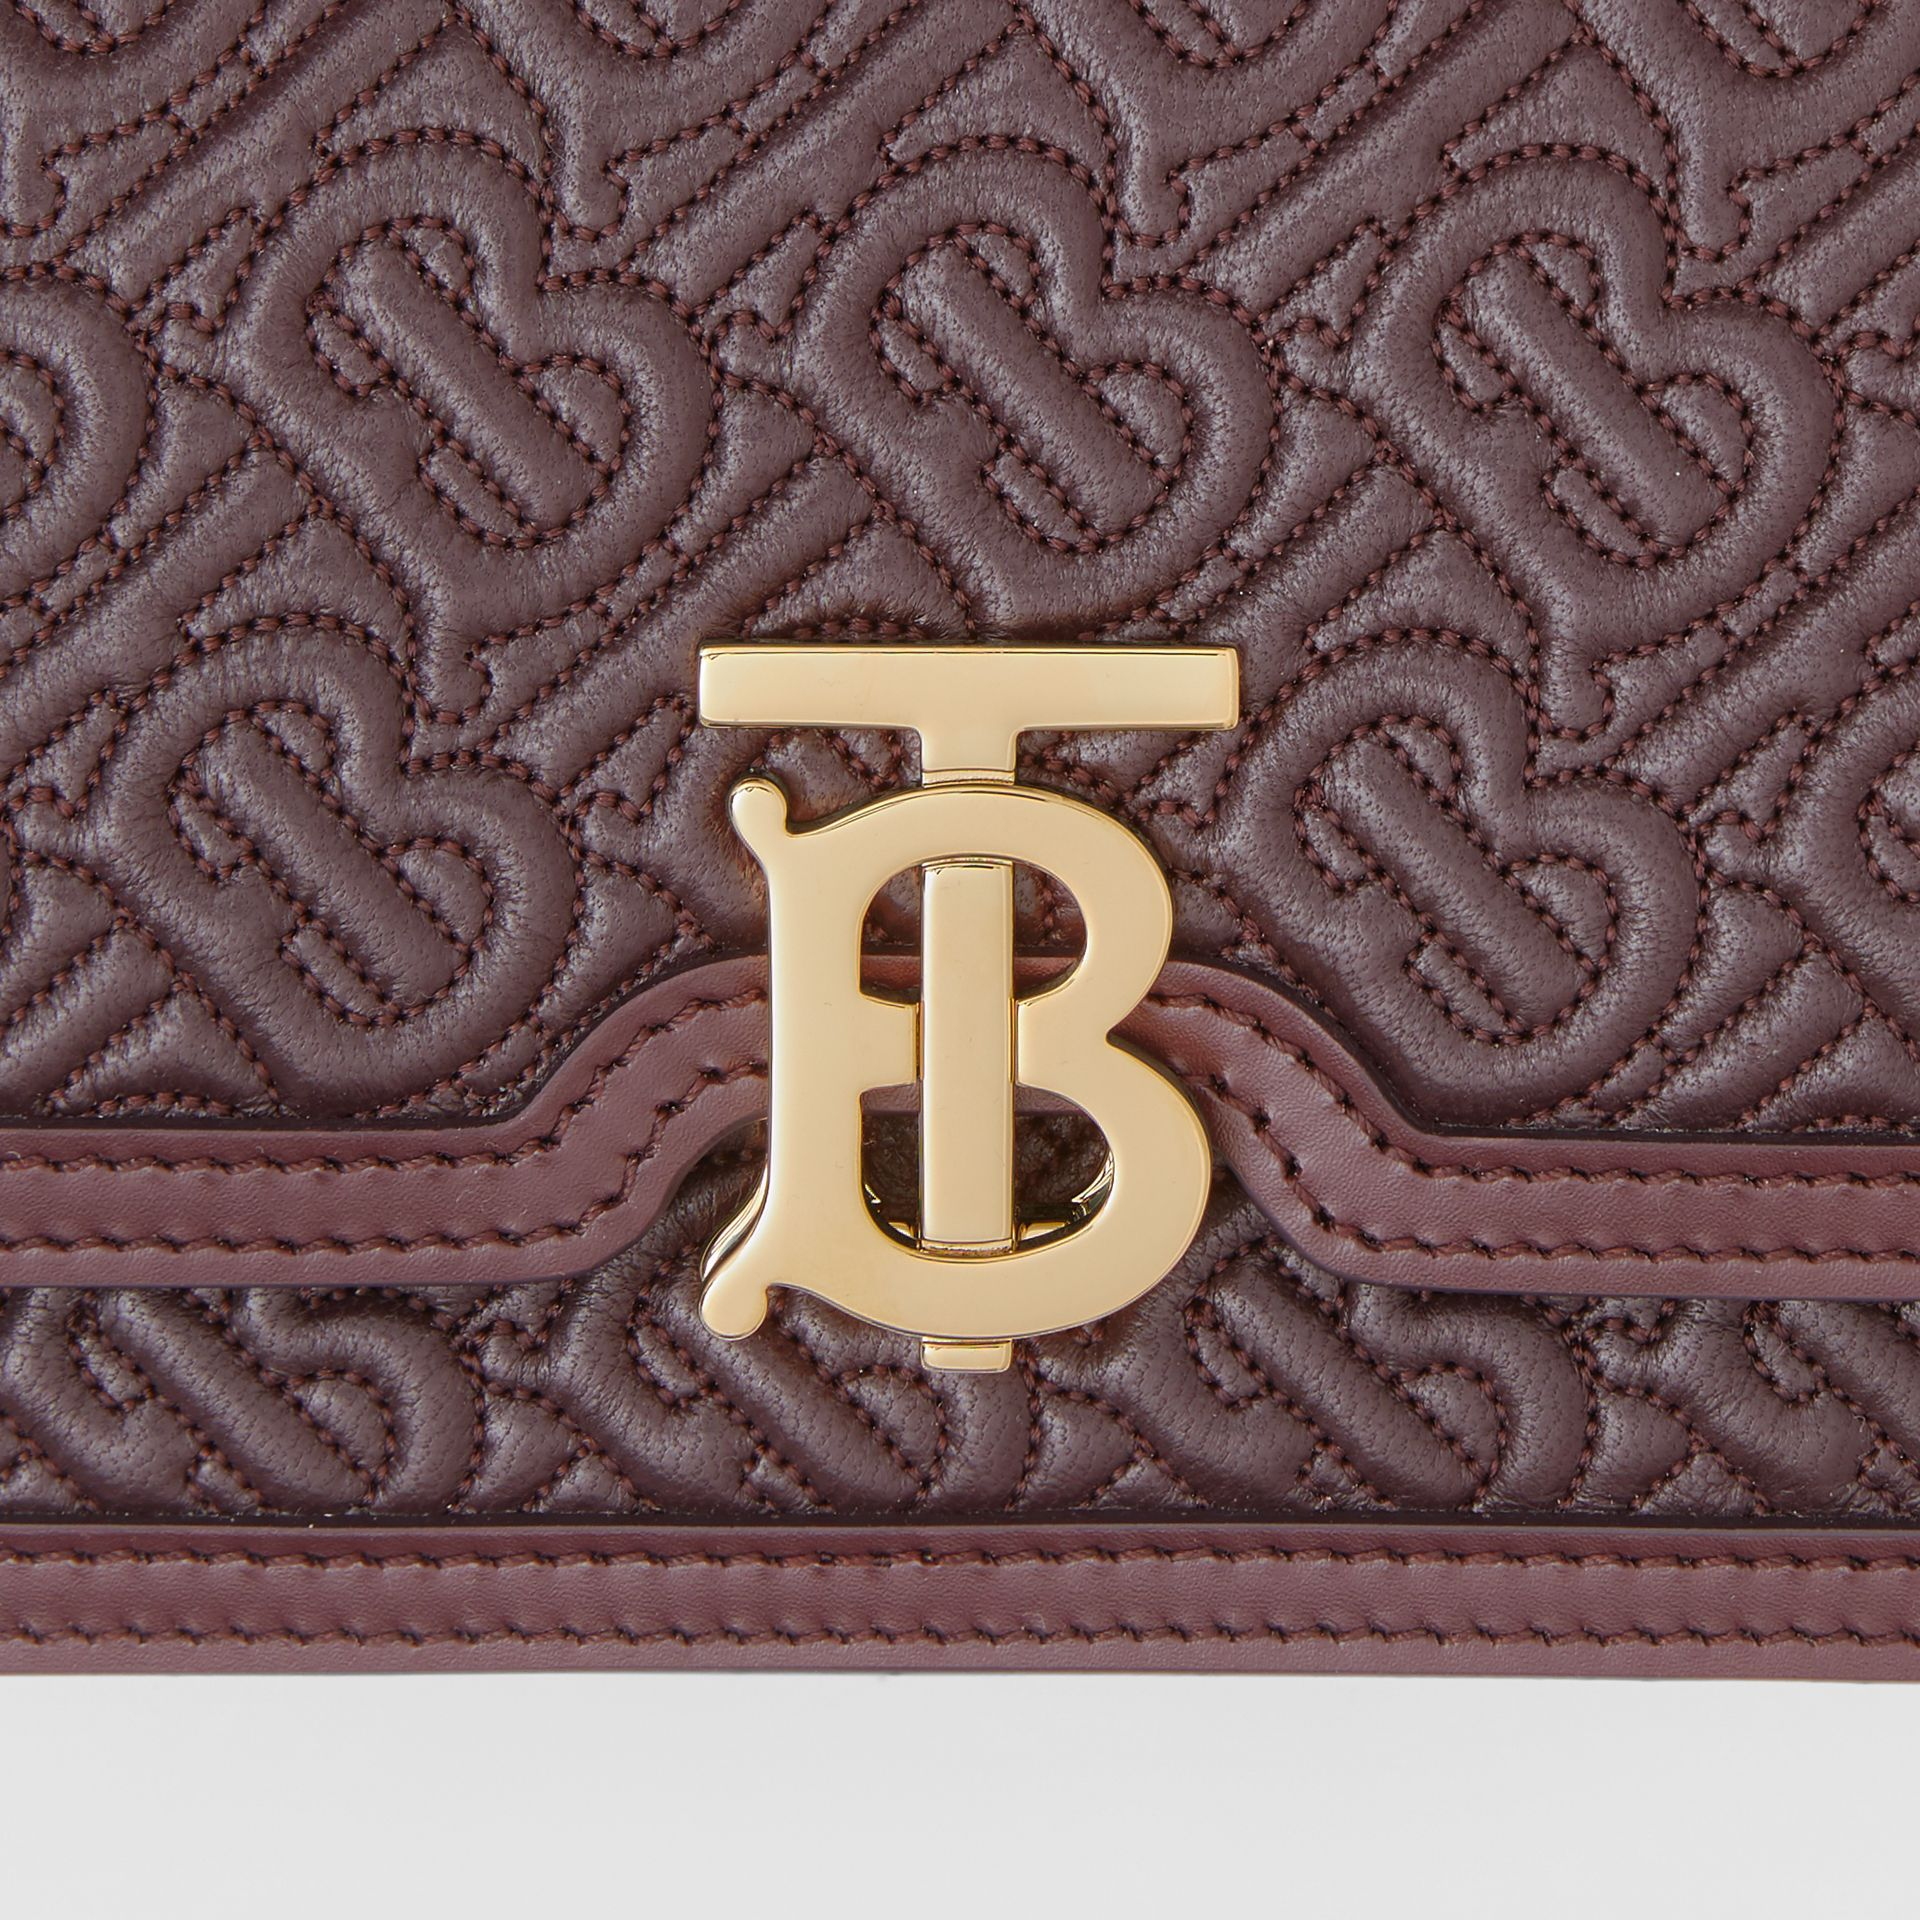 Mini Quilted Monogram Lambskin TB Bag in Dark Burgundy - Women | Burberry - gallery image 1